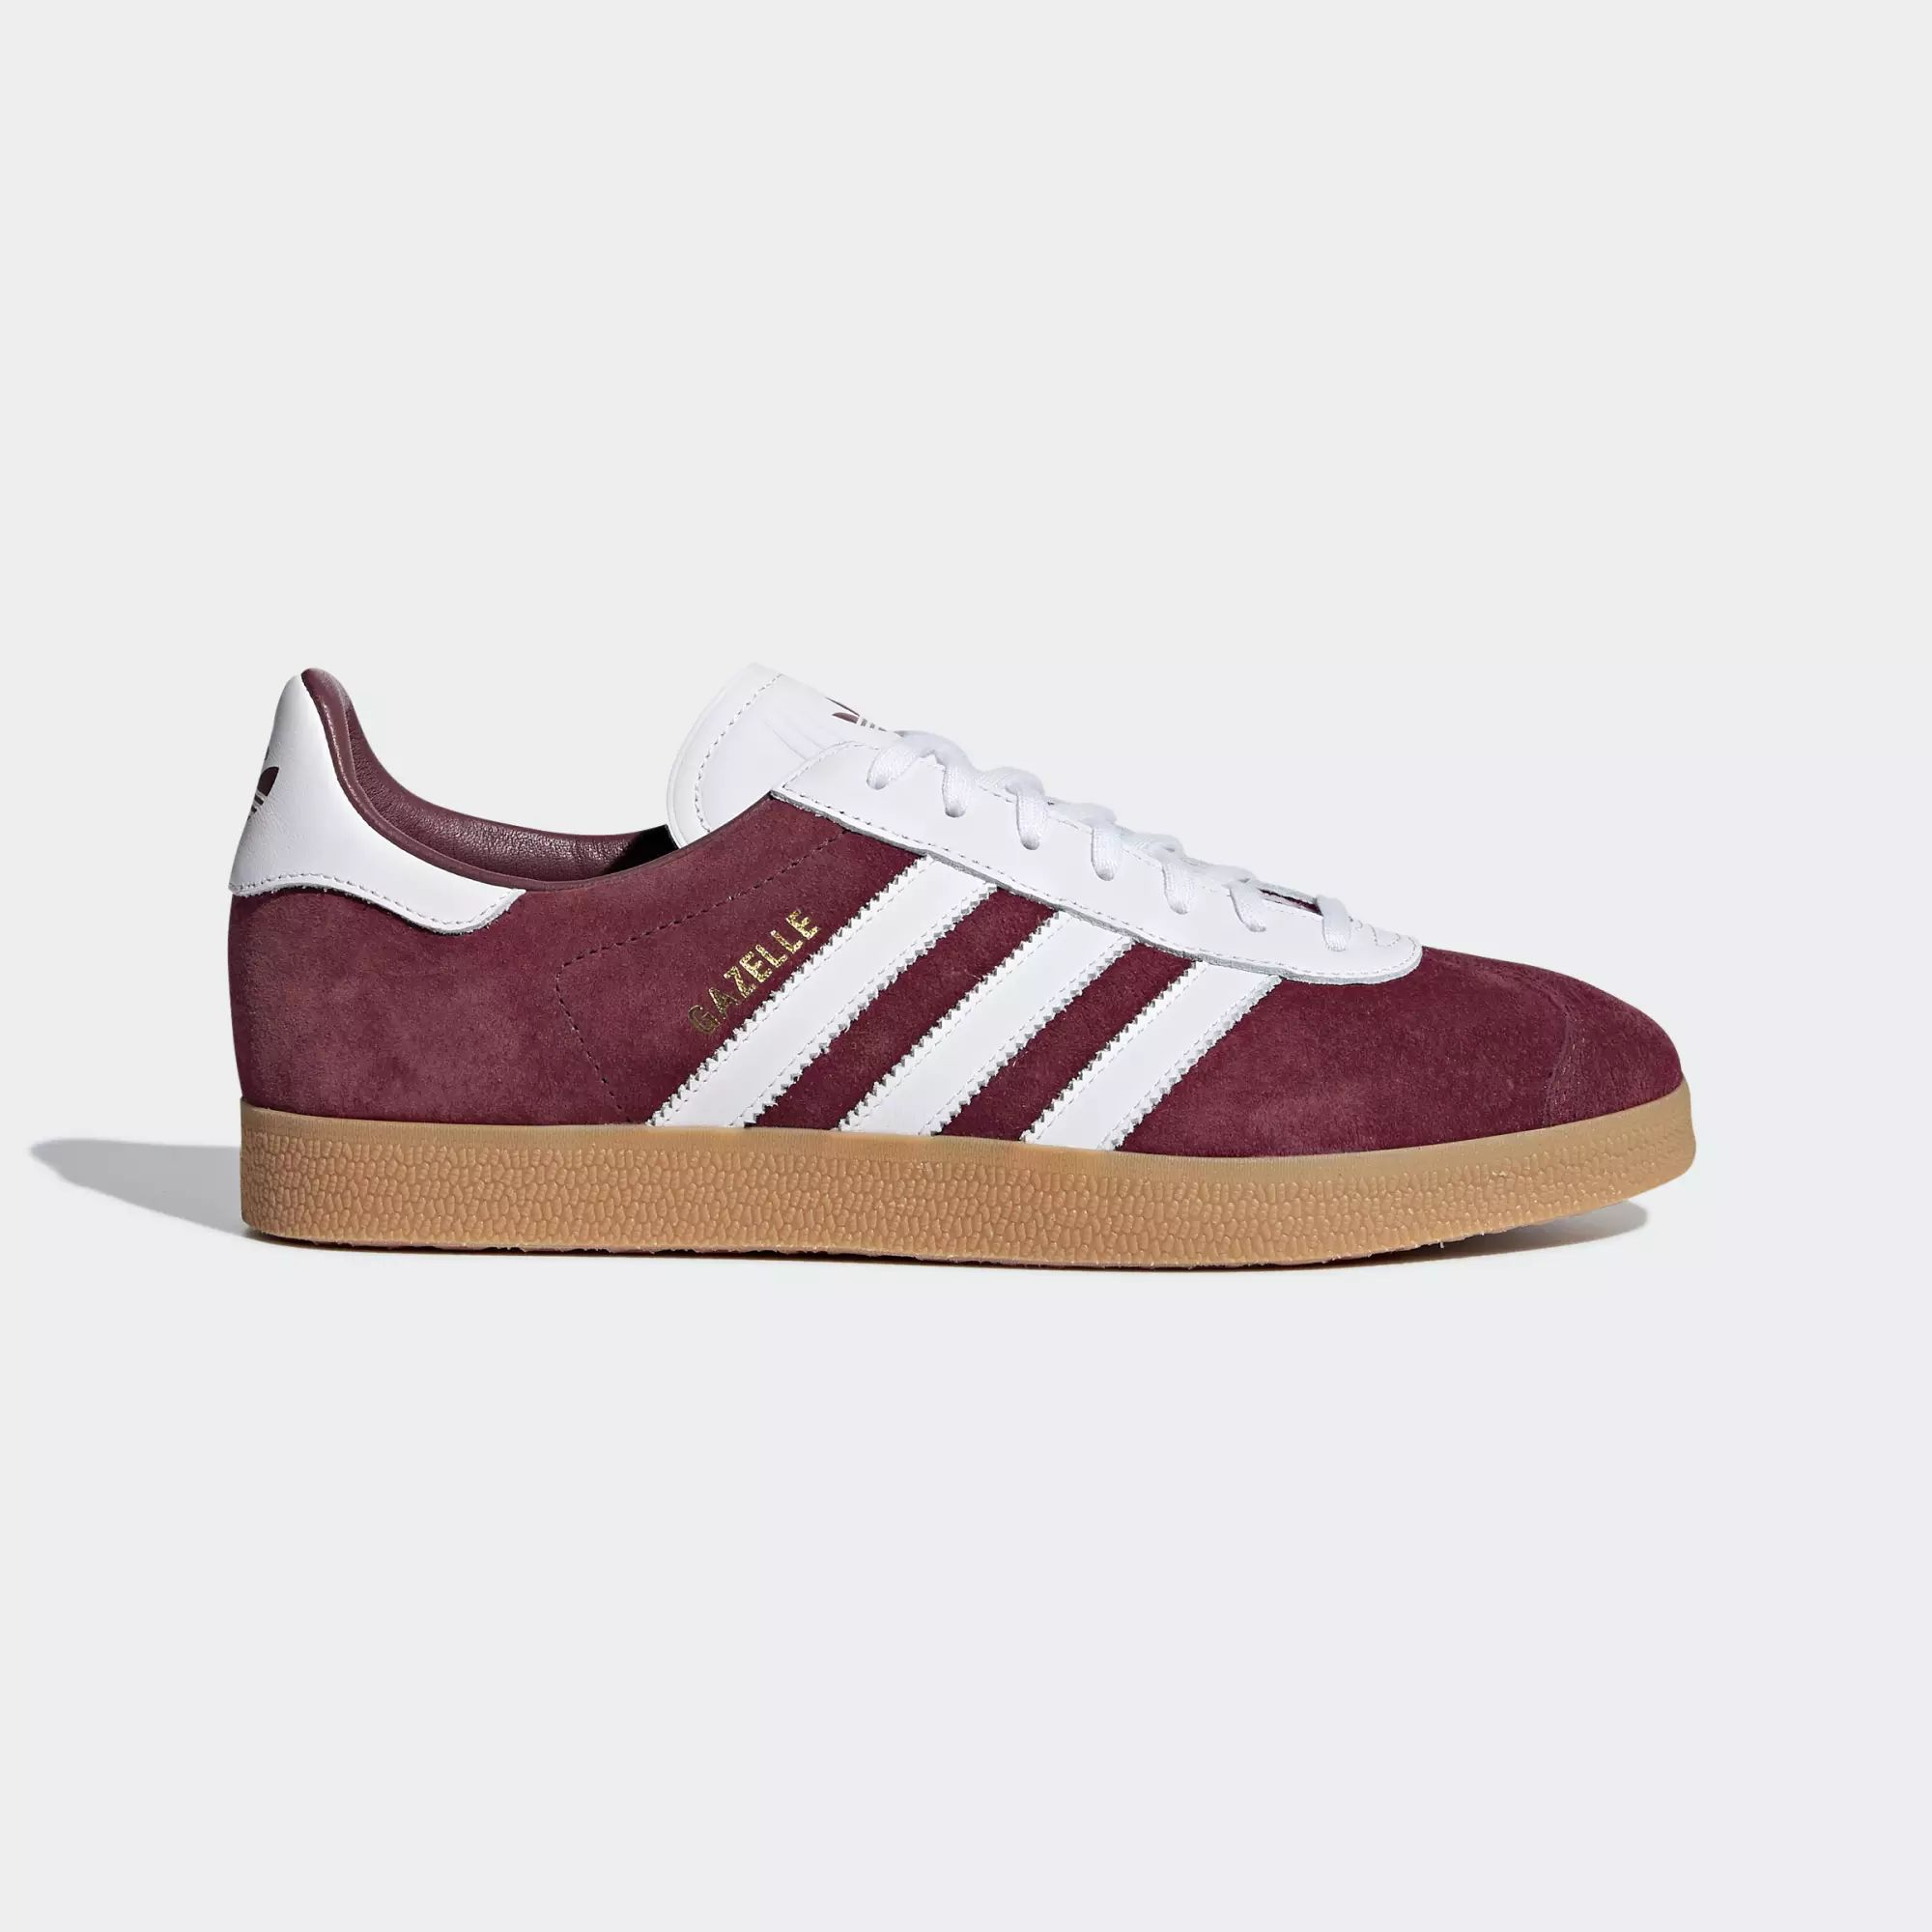 Adidas Gazelle Shoes - Collegiate Burgundy / Ftwr White / Ftwr White